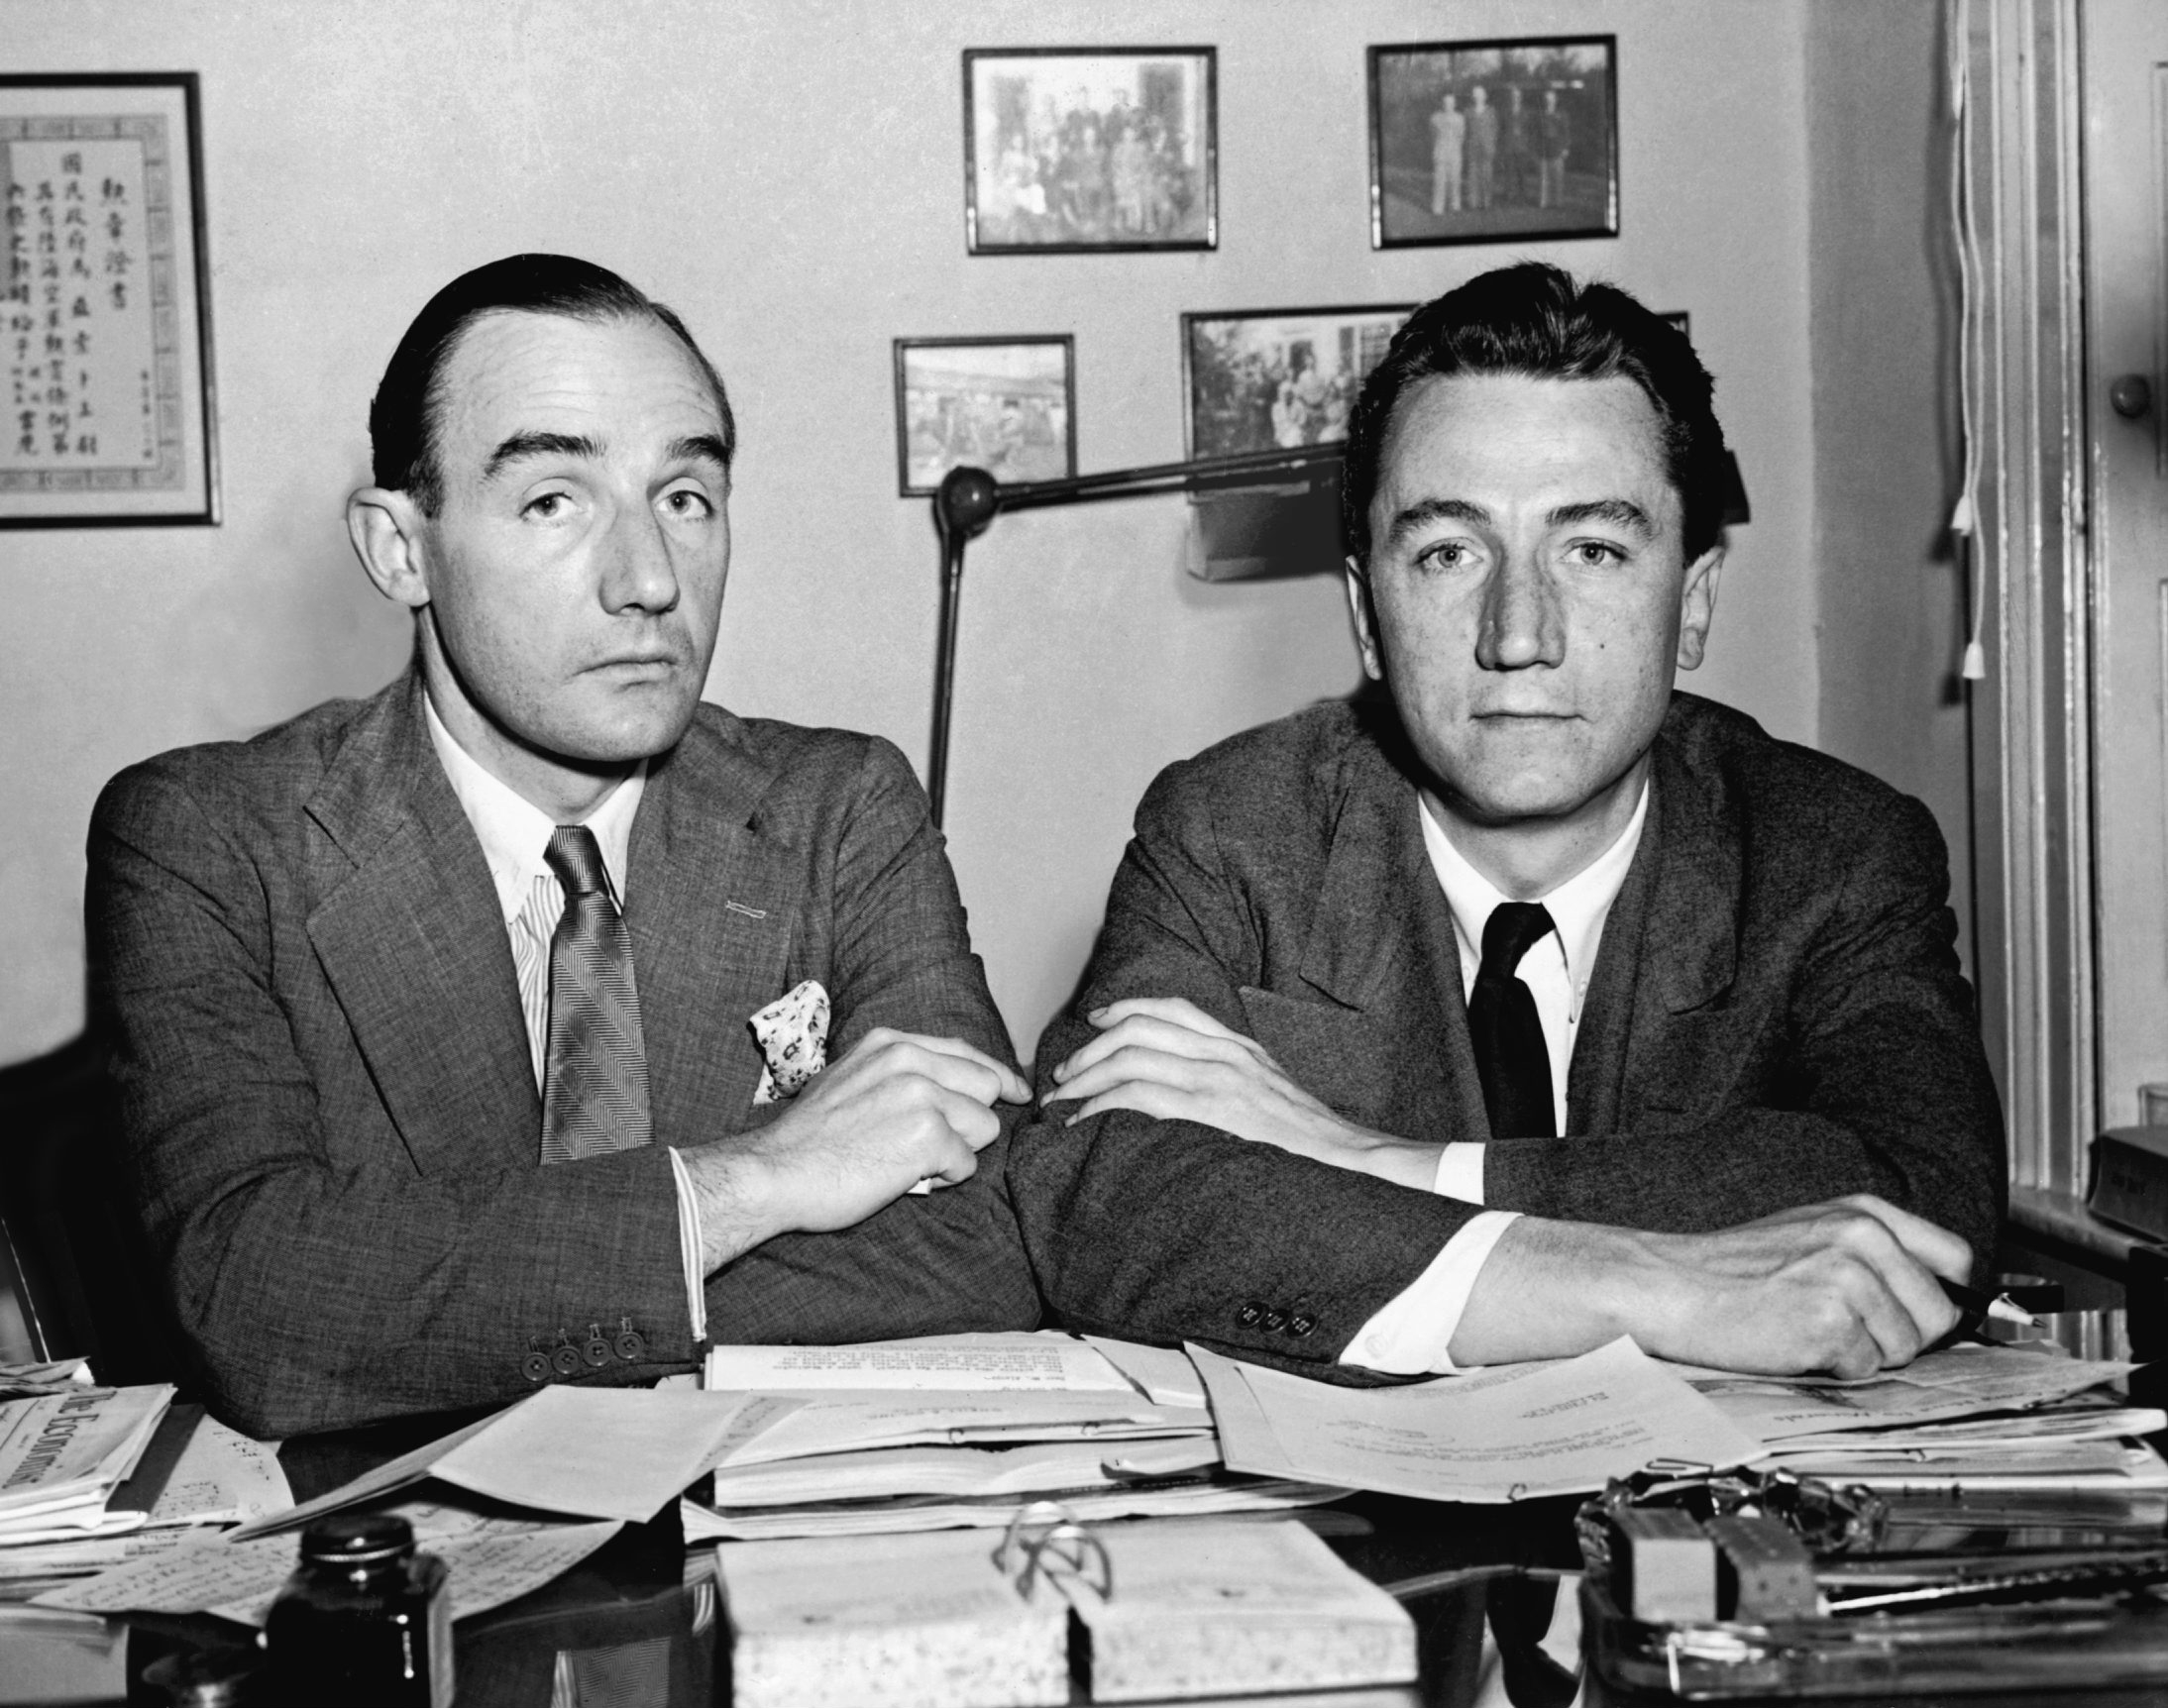 Brothers Joseph, left, and Stewart Alsop were political writers of the Cold War era.